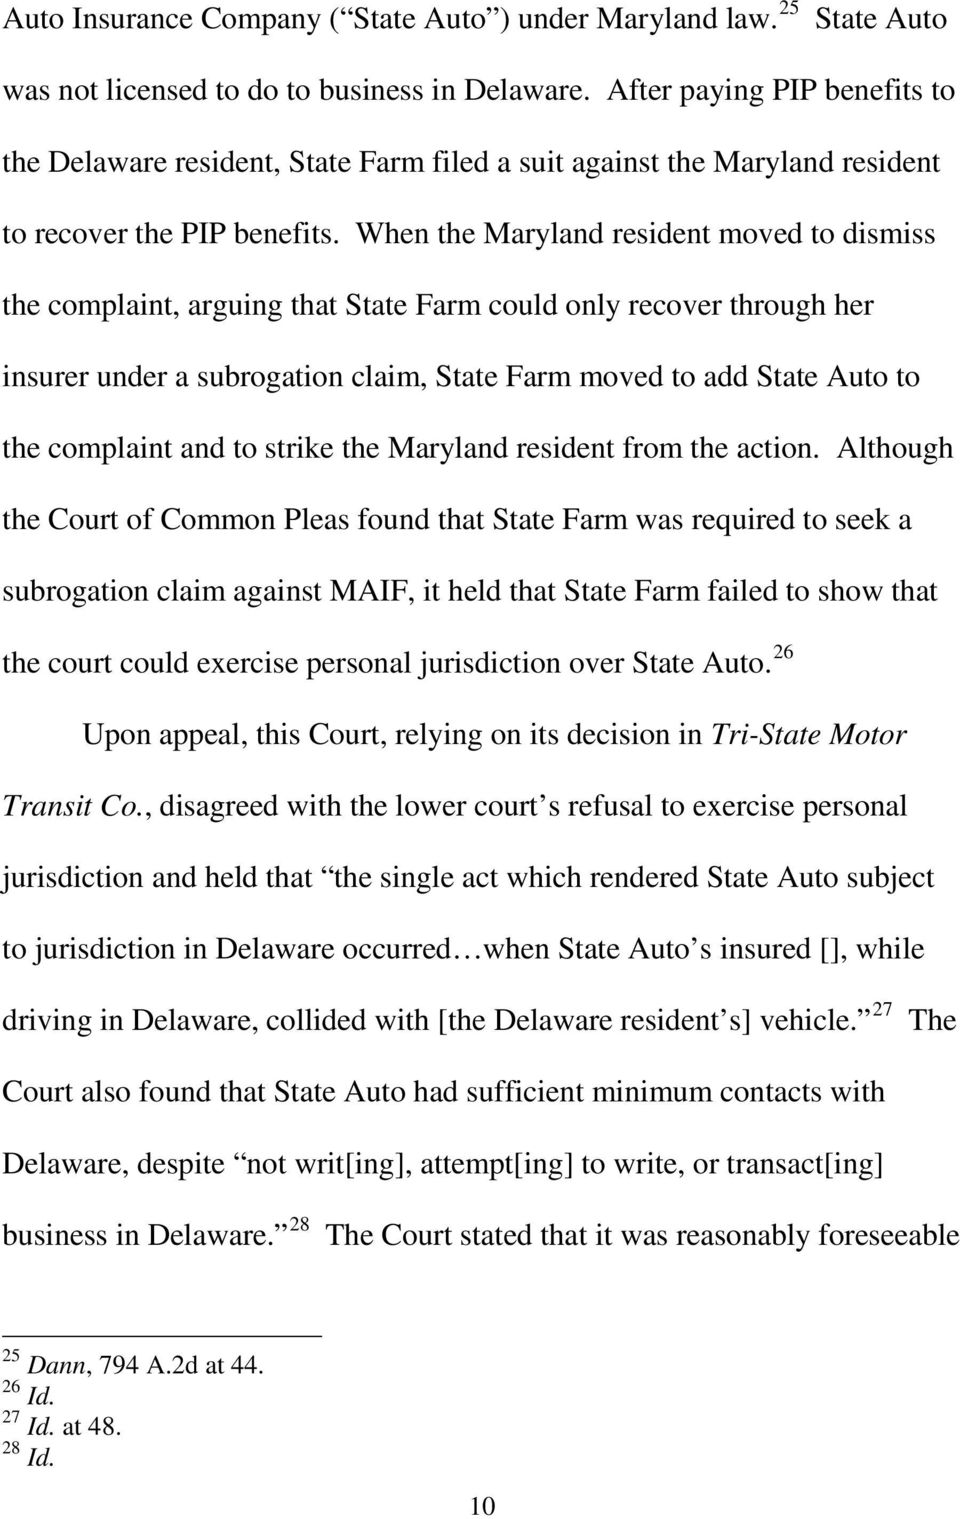 When the Maryland resident moved to dismiss the complaint, arguing that State Farm could only recover through her insurer under a subrogation claim, State Farm moved to add State Auto to the